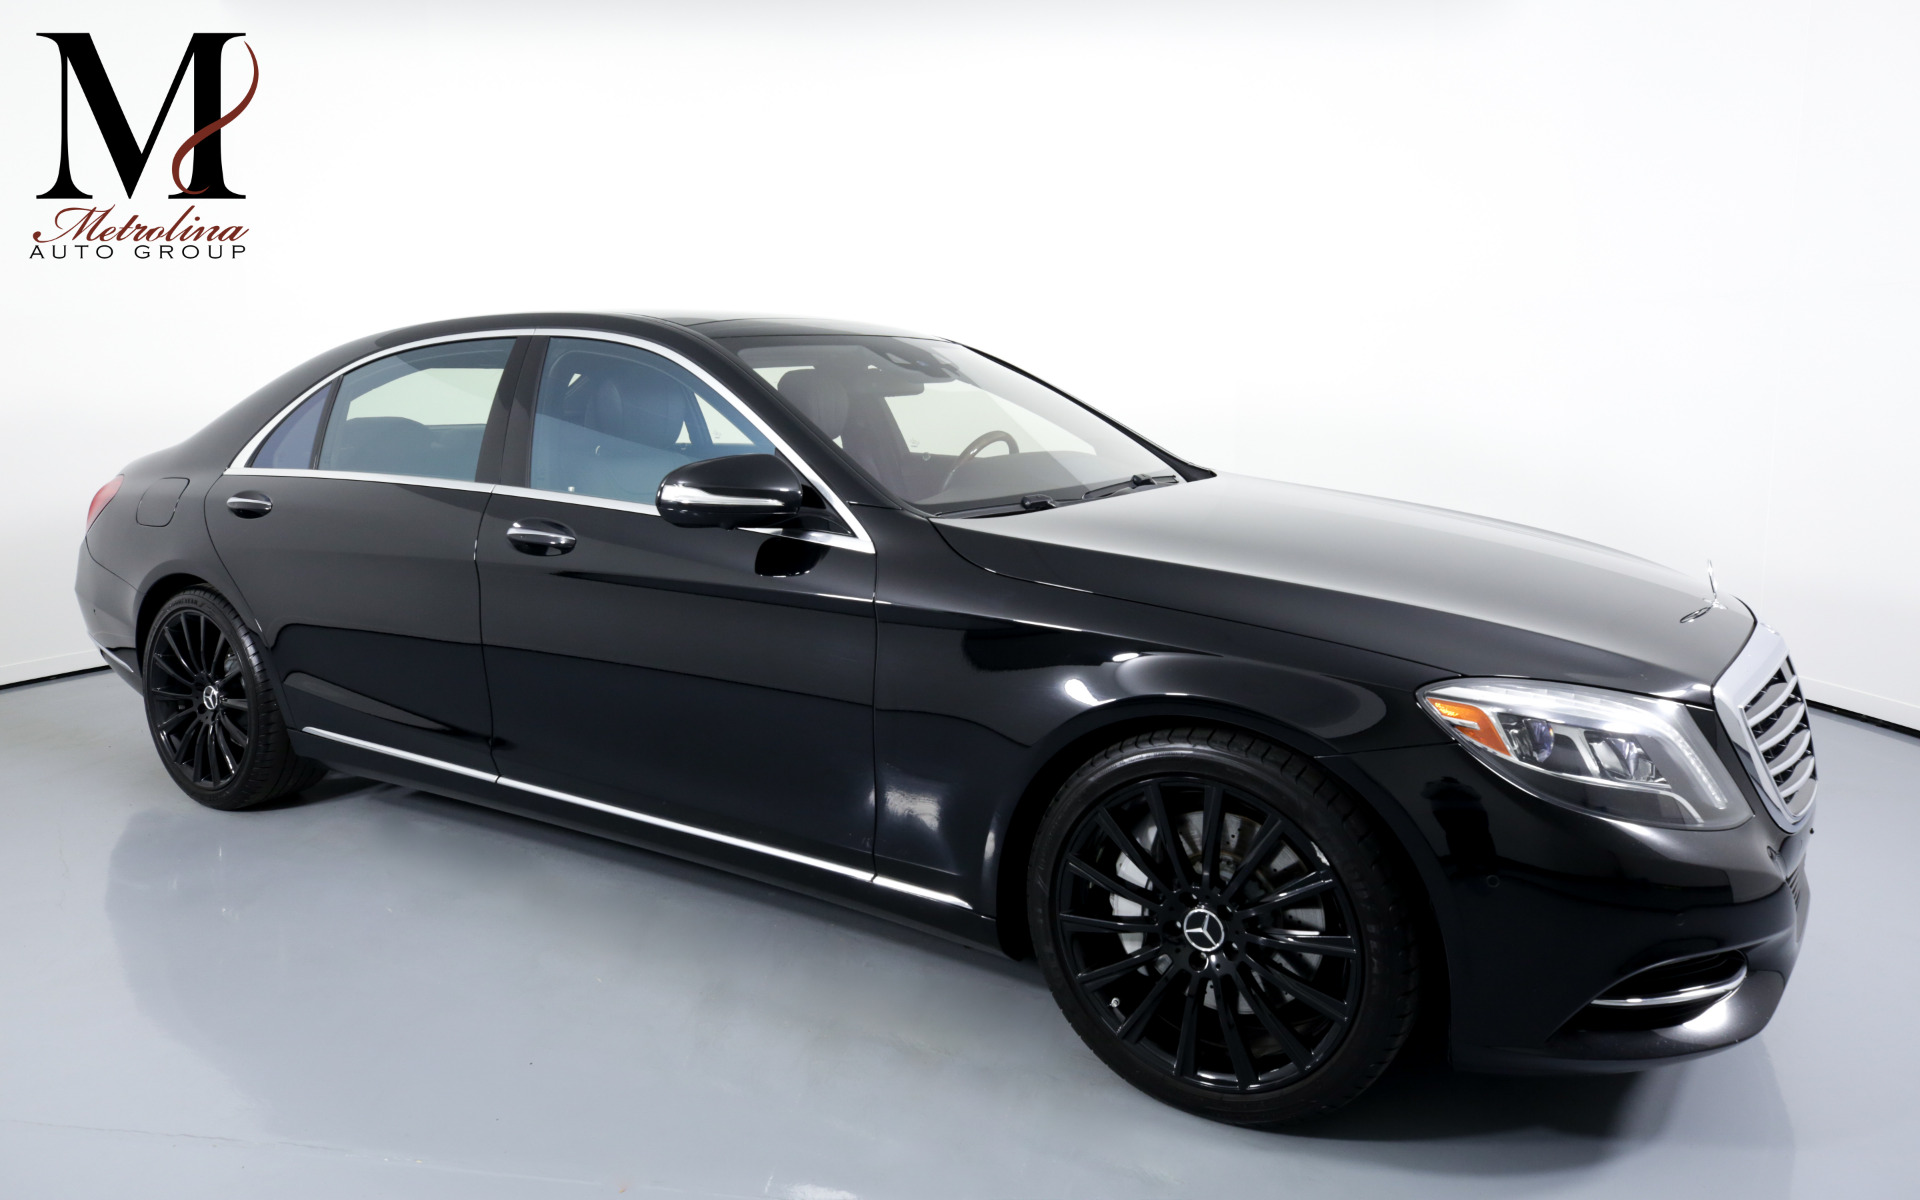 Used 2014 Mercedes-Benz S-Class S 550 for sale $38,456 at Metrolina Auto Group in Charlotte NC 28217 - 1